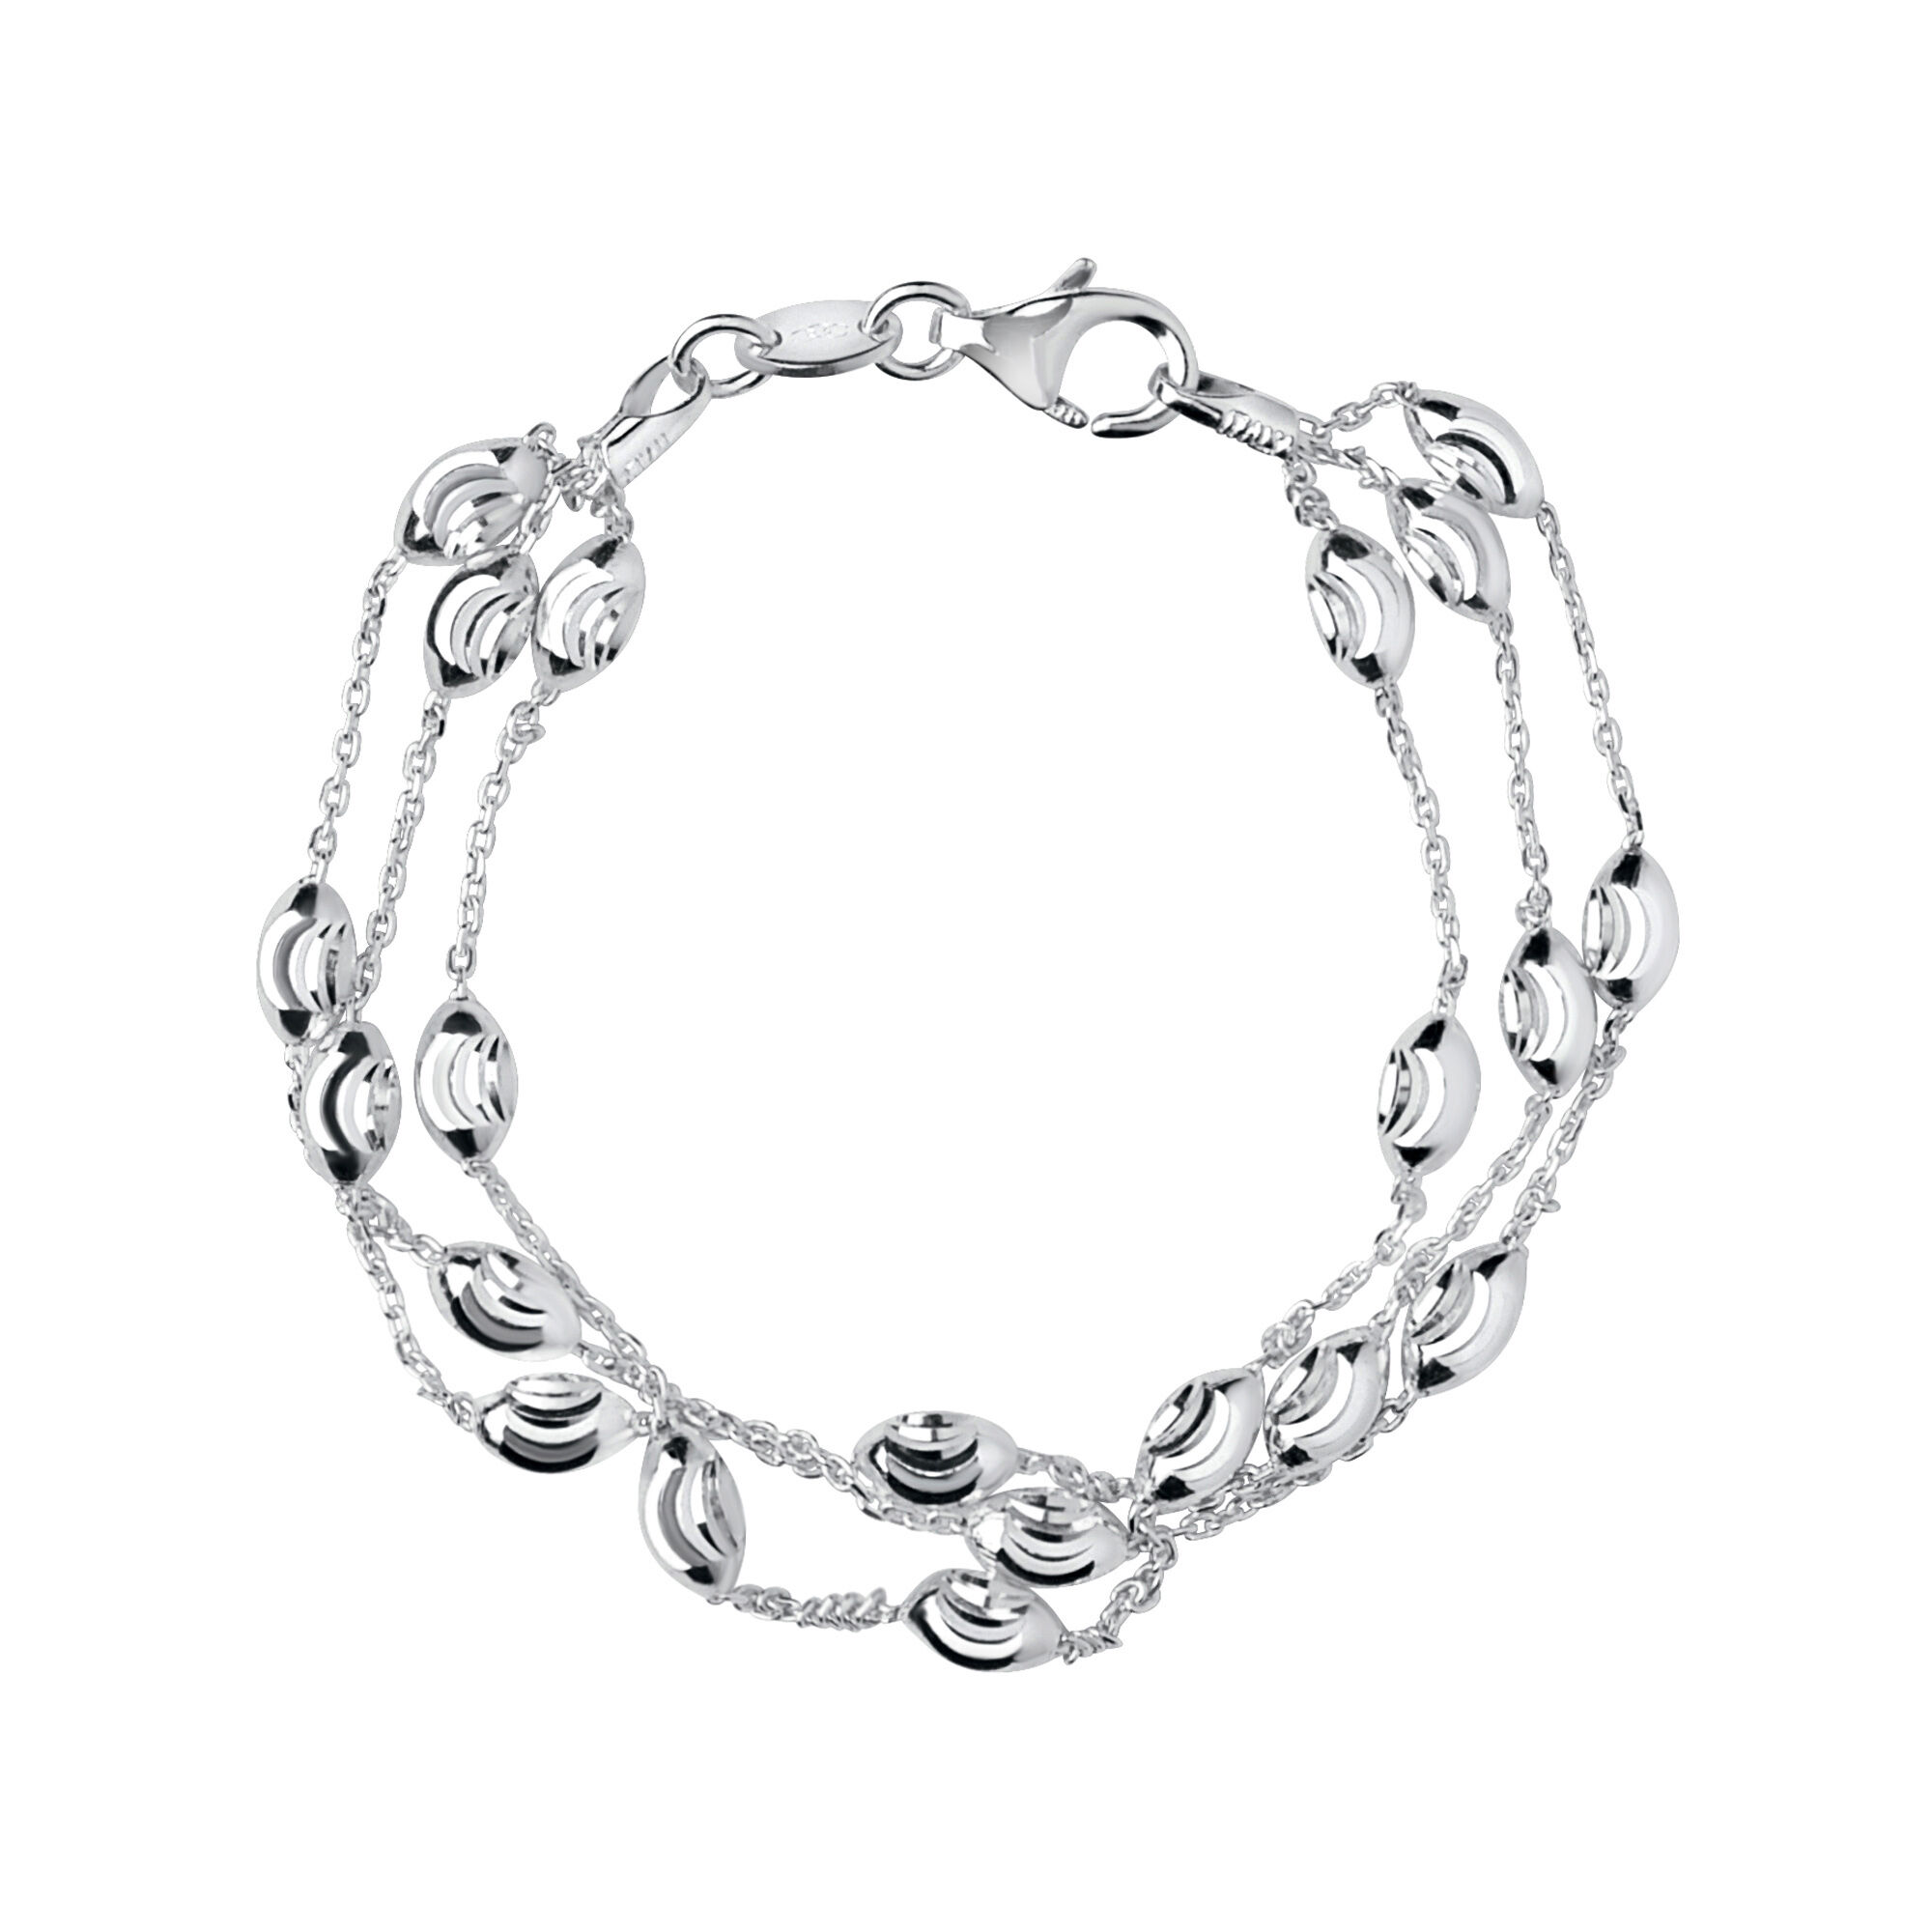 Essentials Silver Beaded Chain 3 Row Bracelet